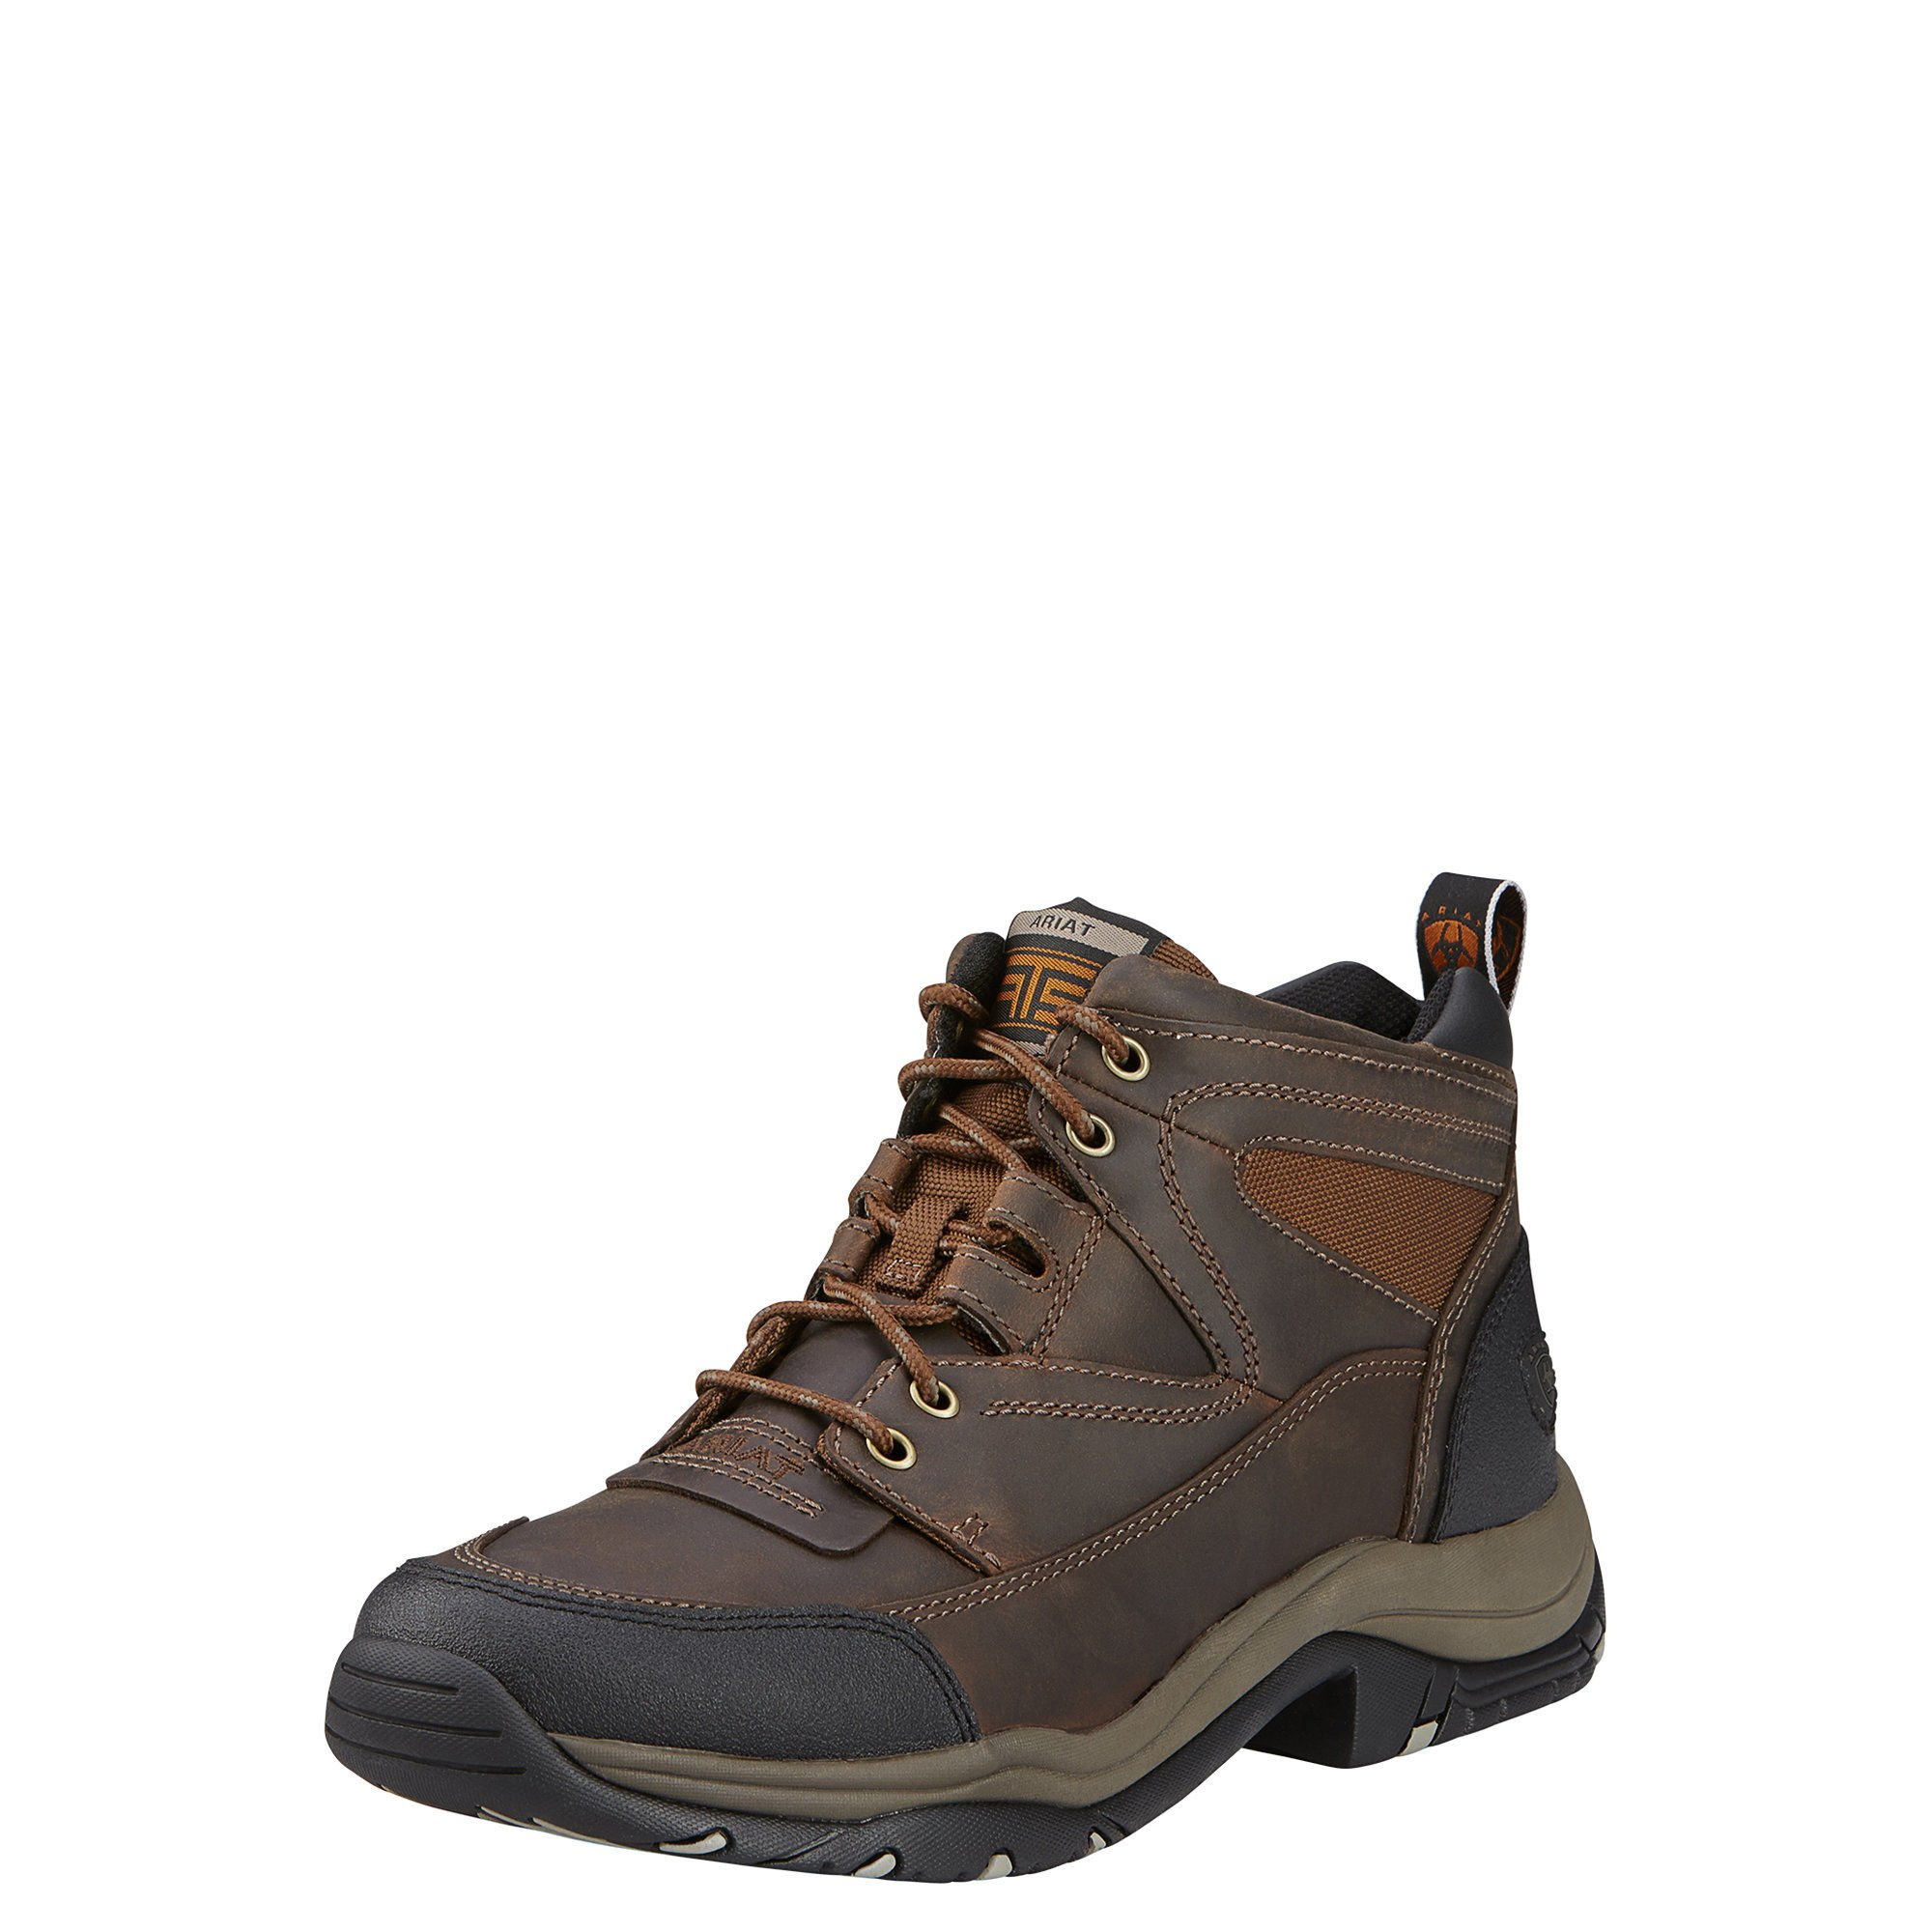 Ariat Men's Terrain Hiking Boot, Distressed Brown, 10 M US by Ariat